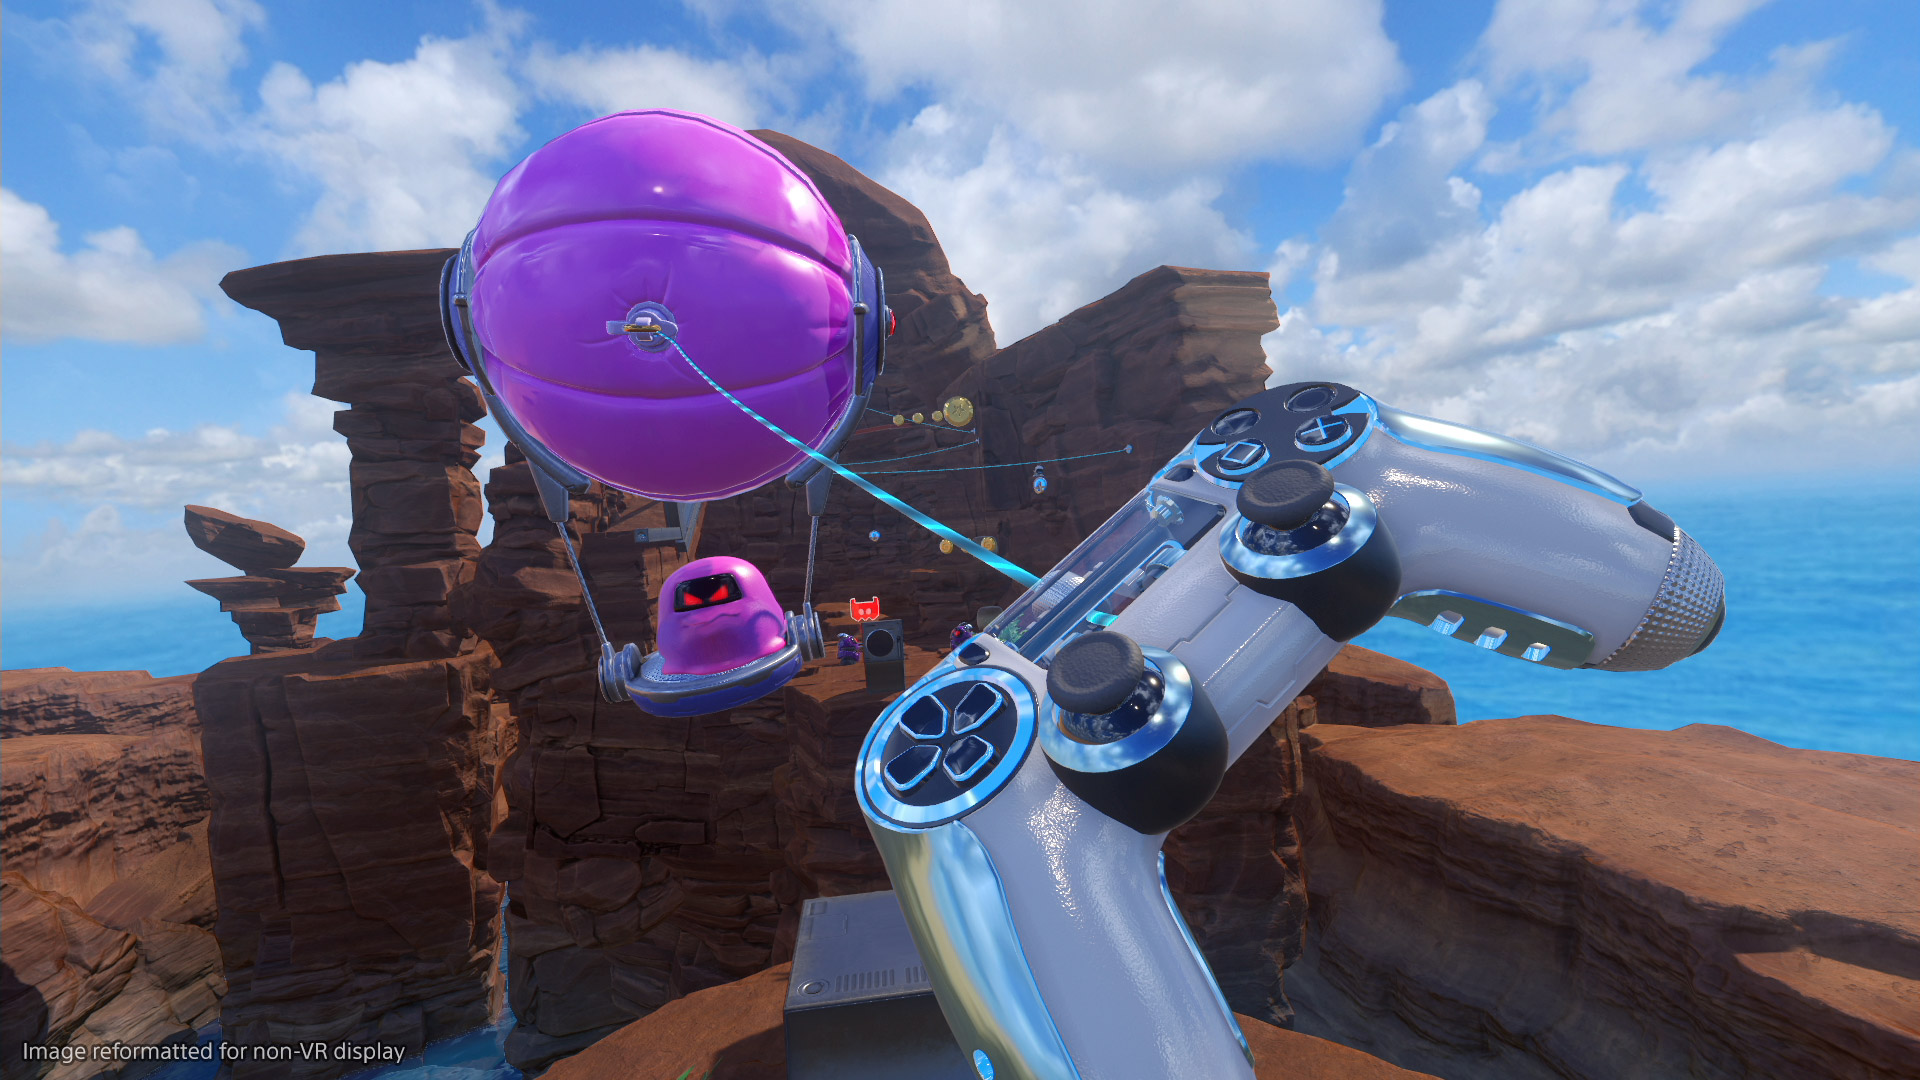 ASTRO BOT Review – This VR Platformer Earns Our First 10 Out of 10